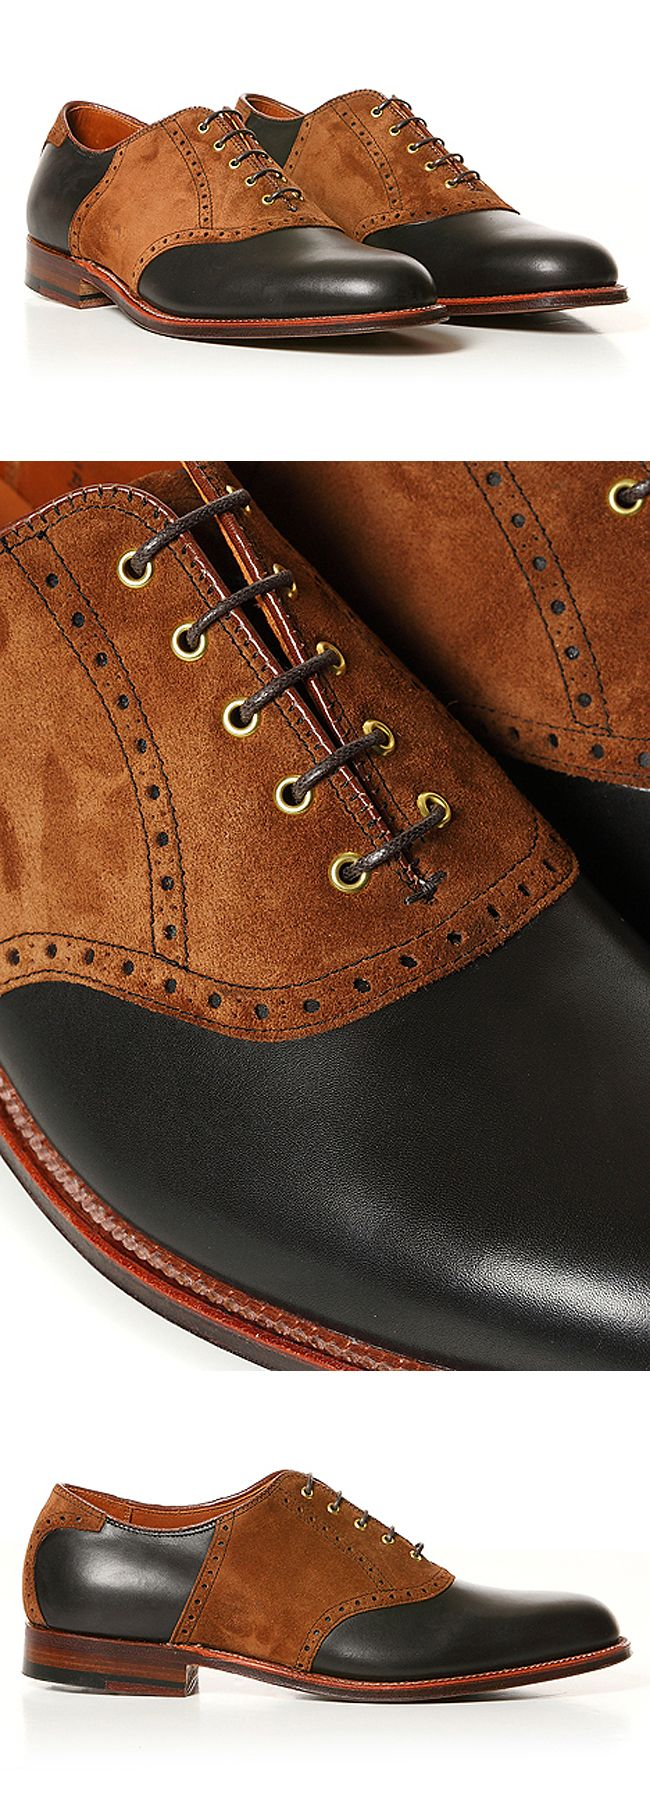 Black #Leather and Caramel Suede Saddle #Shoes. Men's Fall Winter Fashion.